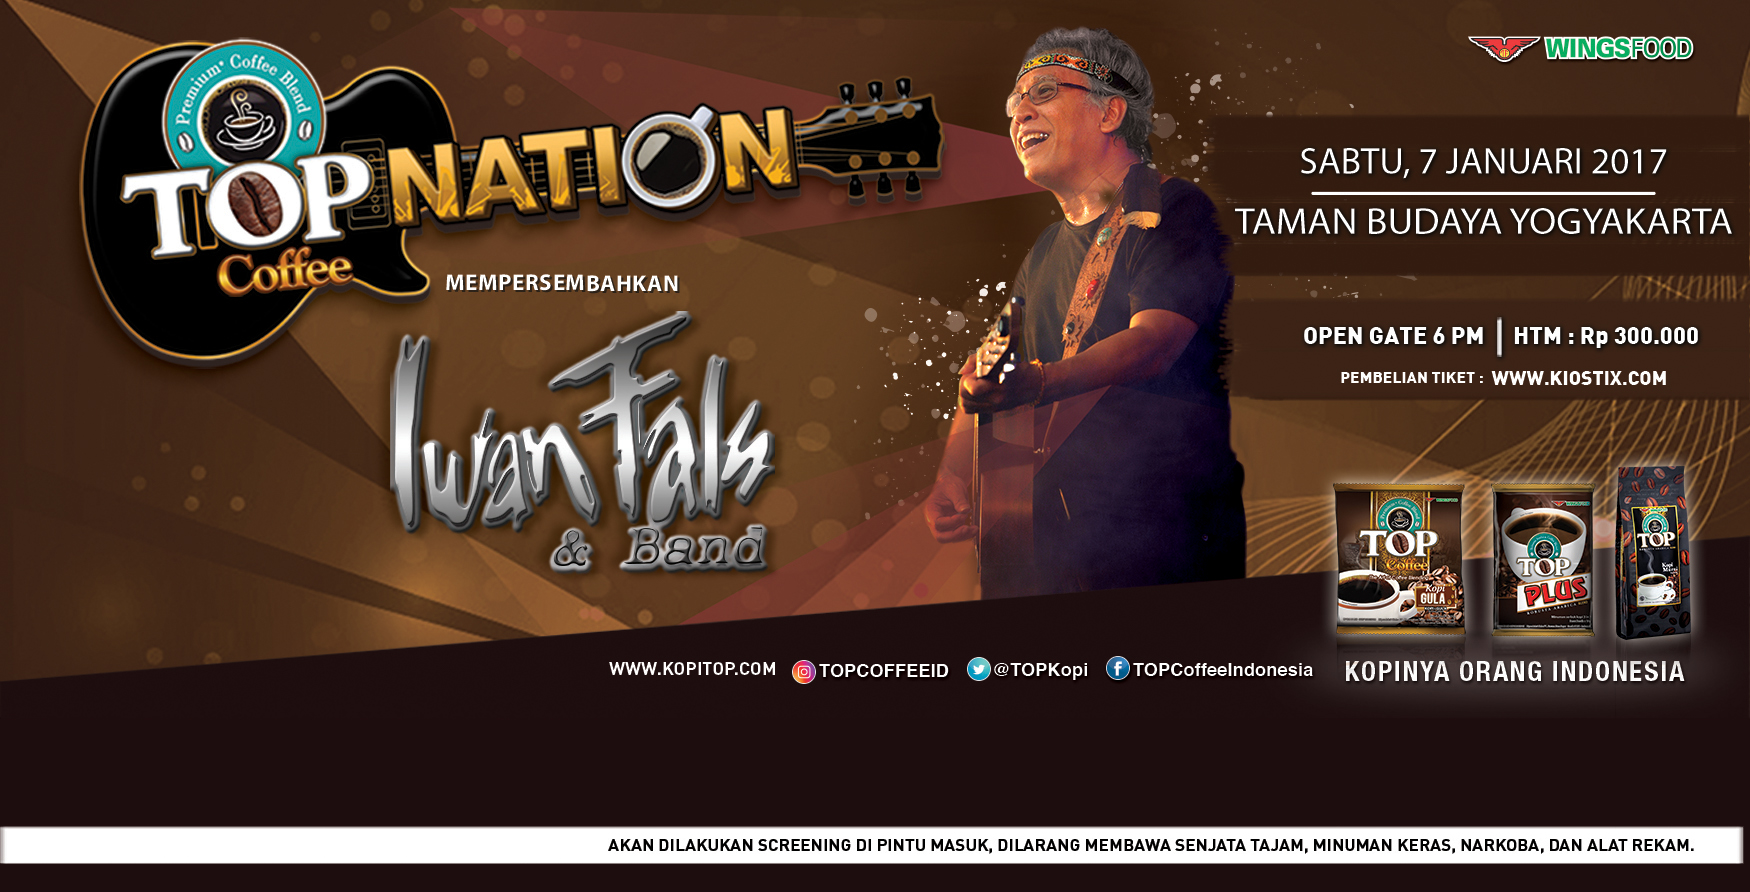 Top Nation Coffee Iwan Fals Concert